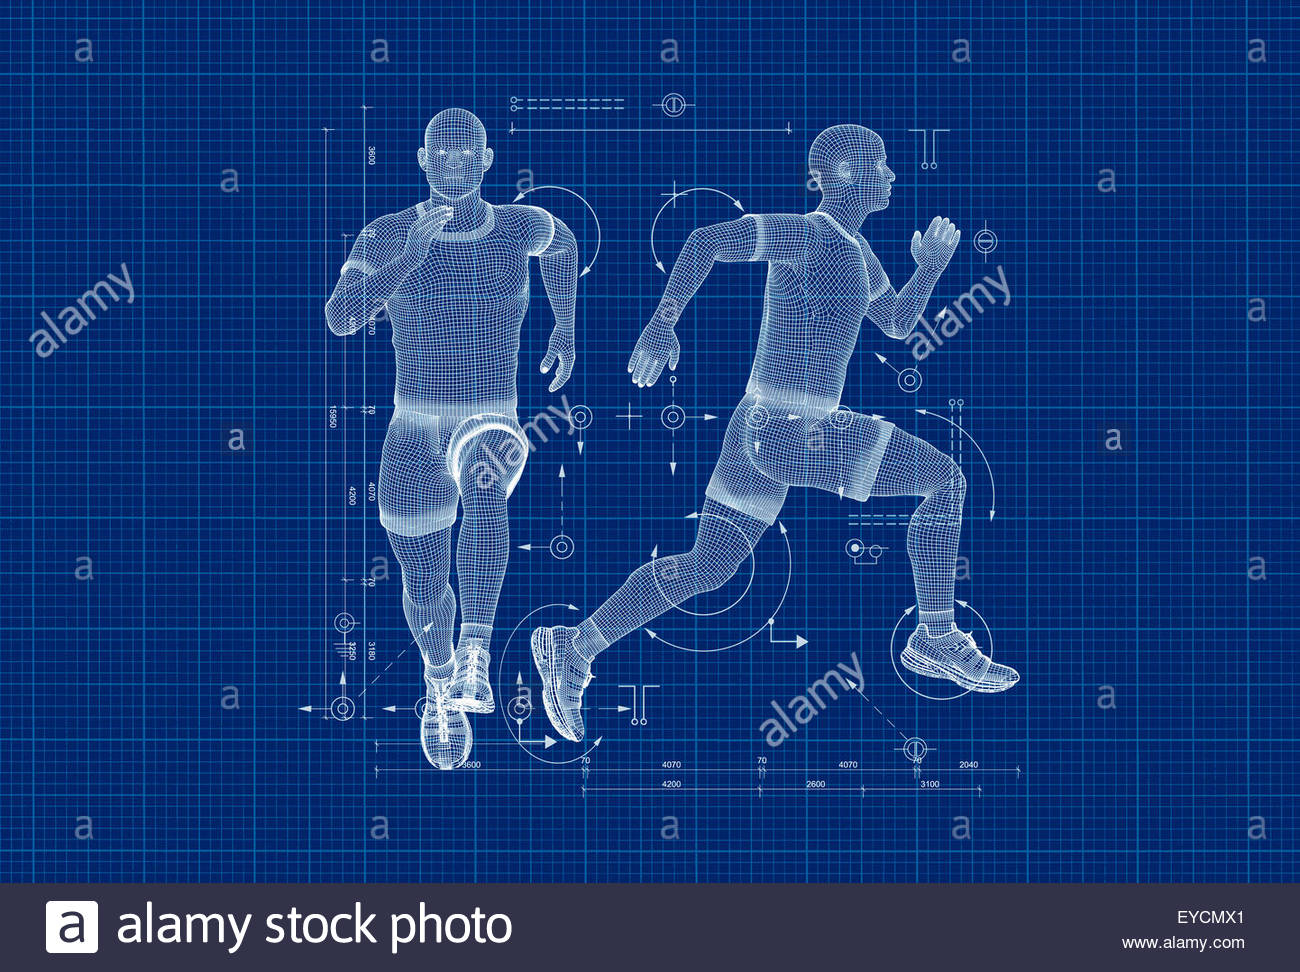 Anatomical model and diagram of man running - Stock Image